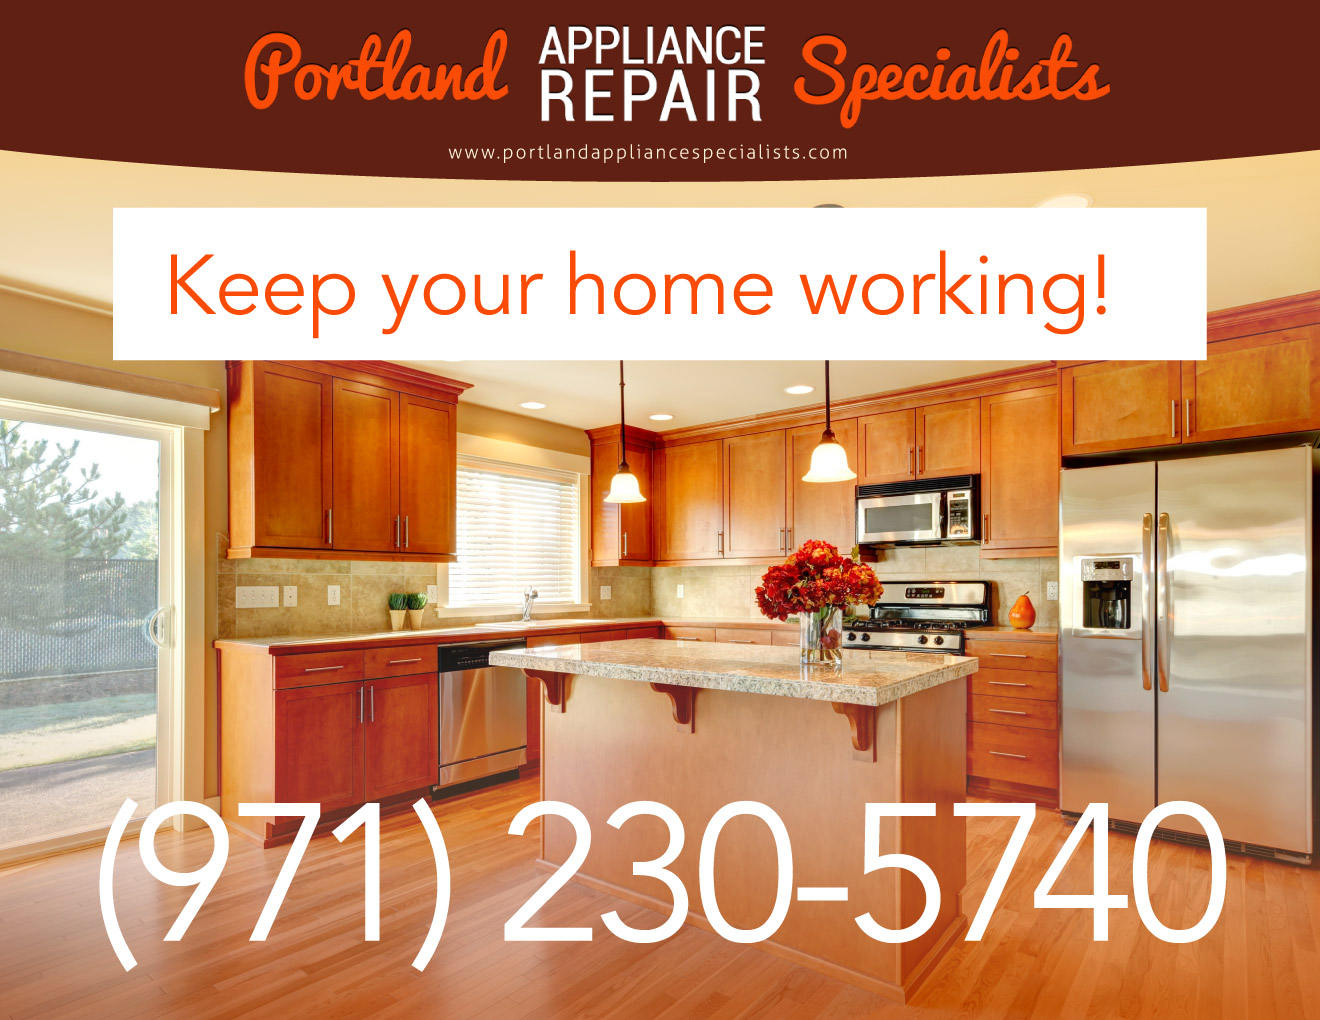 Portland Appliance Repair Specialists  (971) 2305740. Cable Providers In San Jose Ca. Small Business Oklahoma Car Insurance Lawyers. What Is The Difference Between Medicare And Medicare Advantage. Adoption Subsidy Texas Virtual Server Hosting. How To Become A Family Therapist. Sales Enablement Software Lawyers Long Island. Home Phone International Calls. General Service Office Alcoholics Anonymous